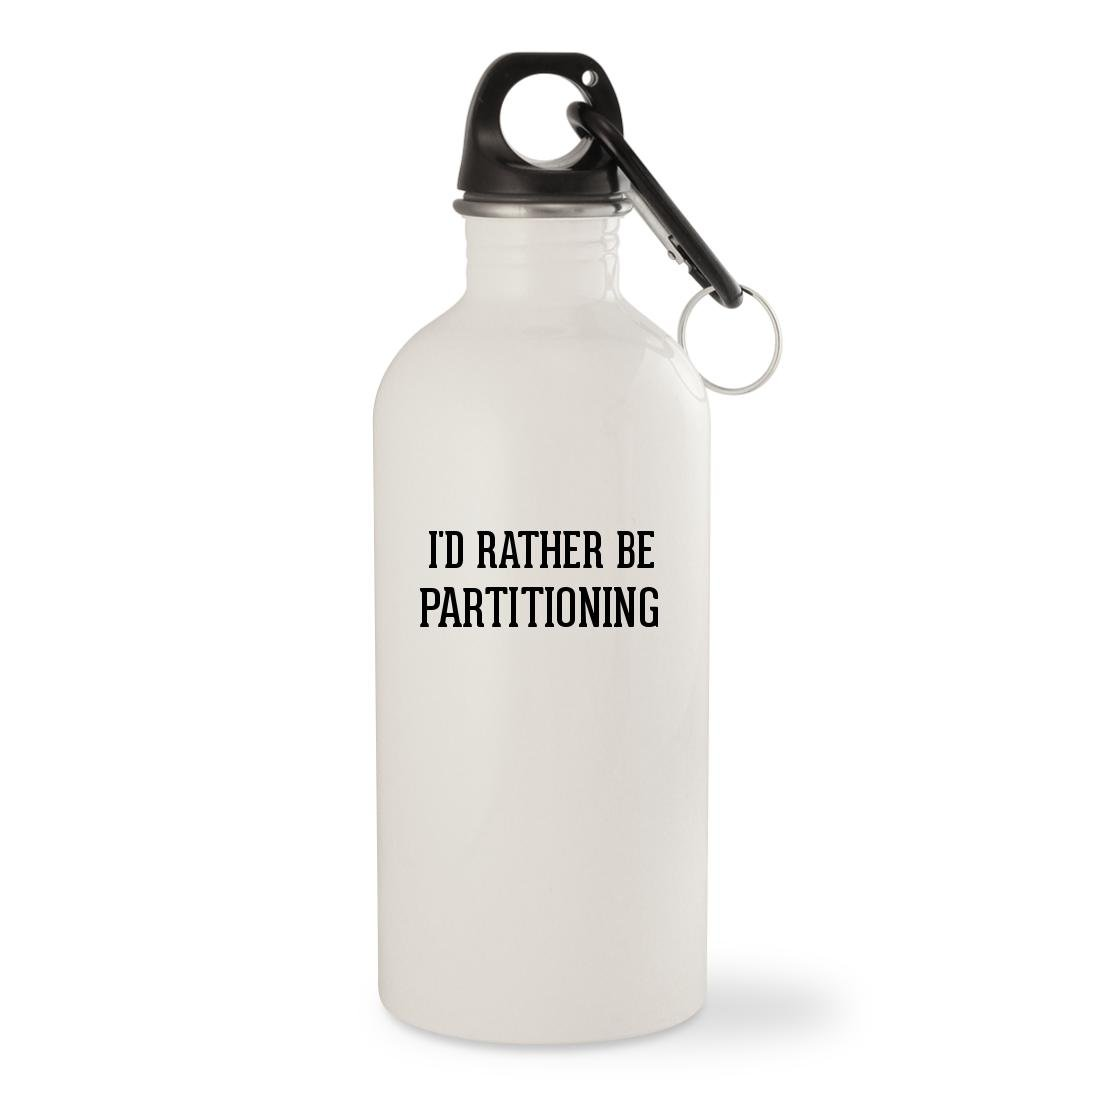 I'd Rather Be PARTITIONING - White 20oz Stainless Steel Water Bottle with Carabiner